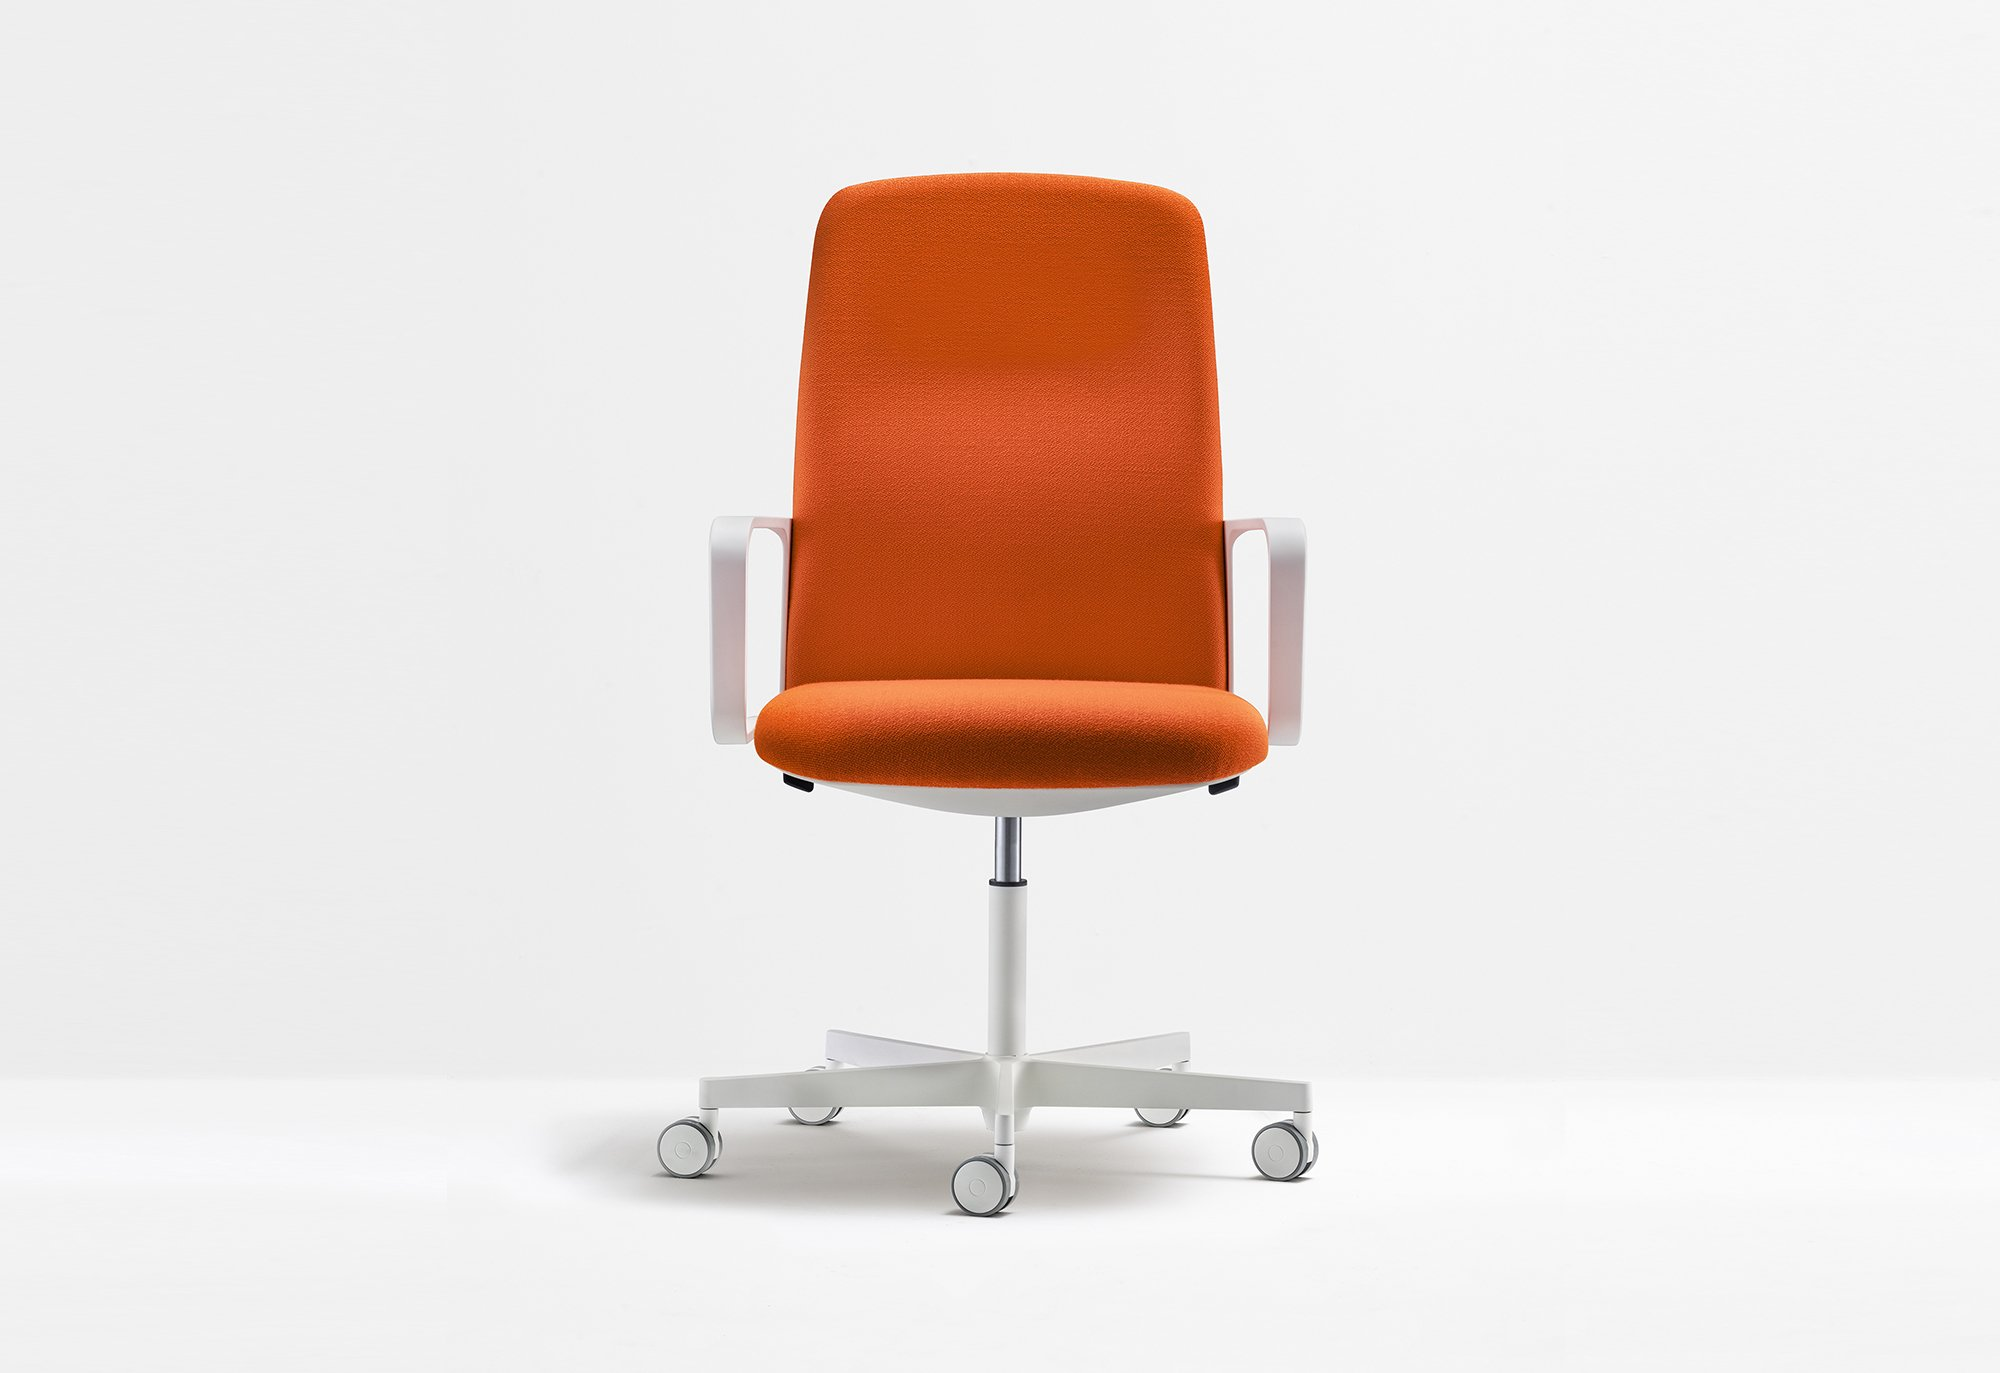 TEMPS 3765 Office Chair from Pedrali, designed by Jorge Pensi